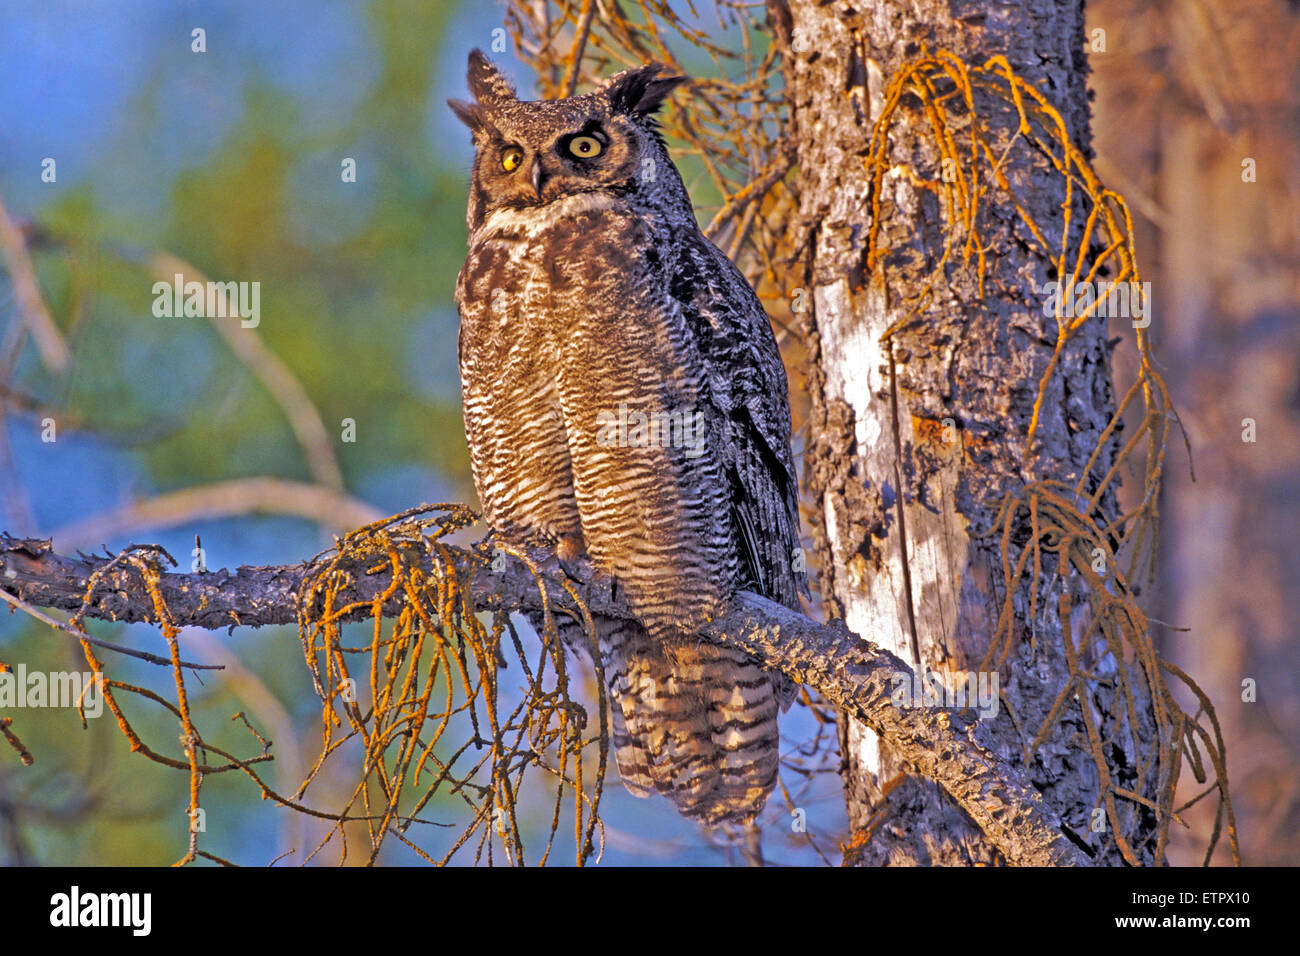 Great Horned Owl sitting in dead spruce tree - Stock Image